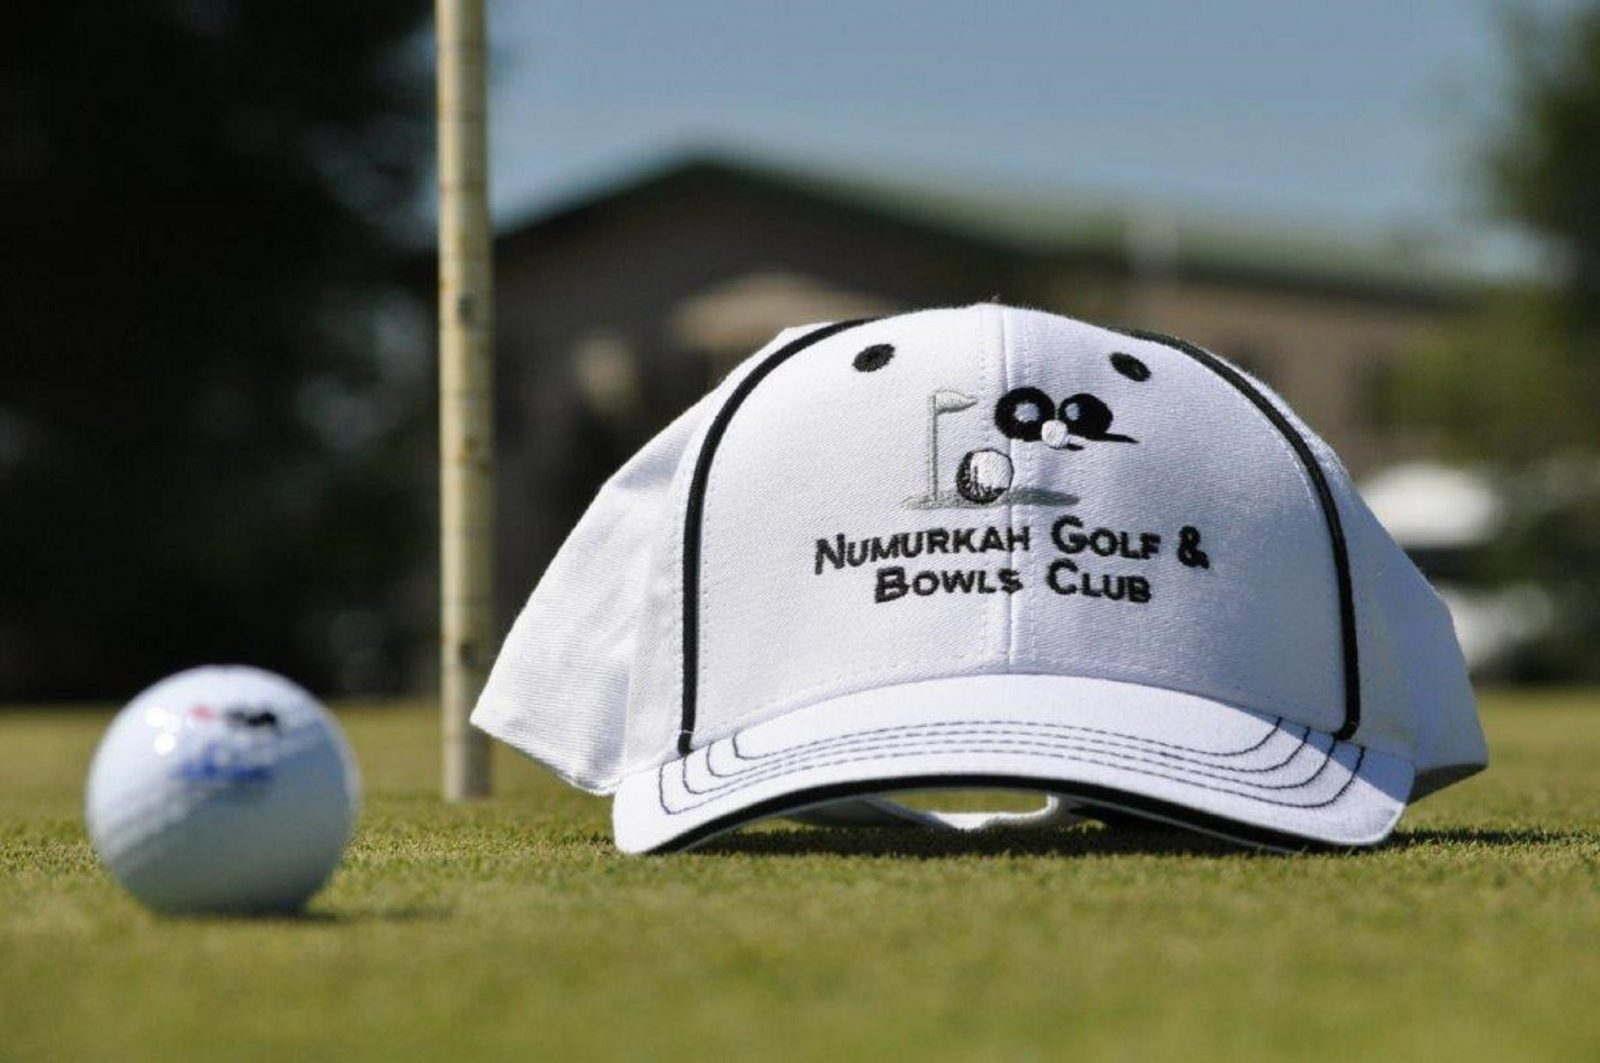 Numurkah Golf and Bowls Club